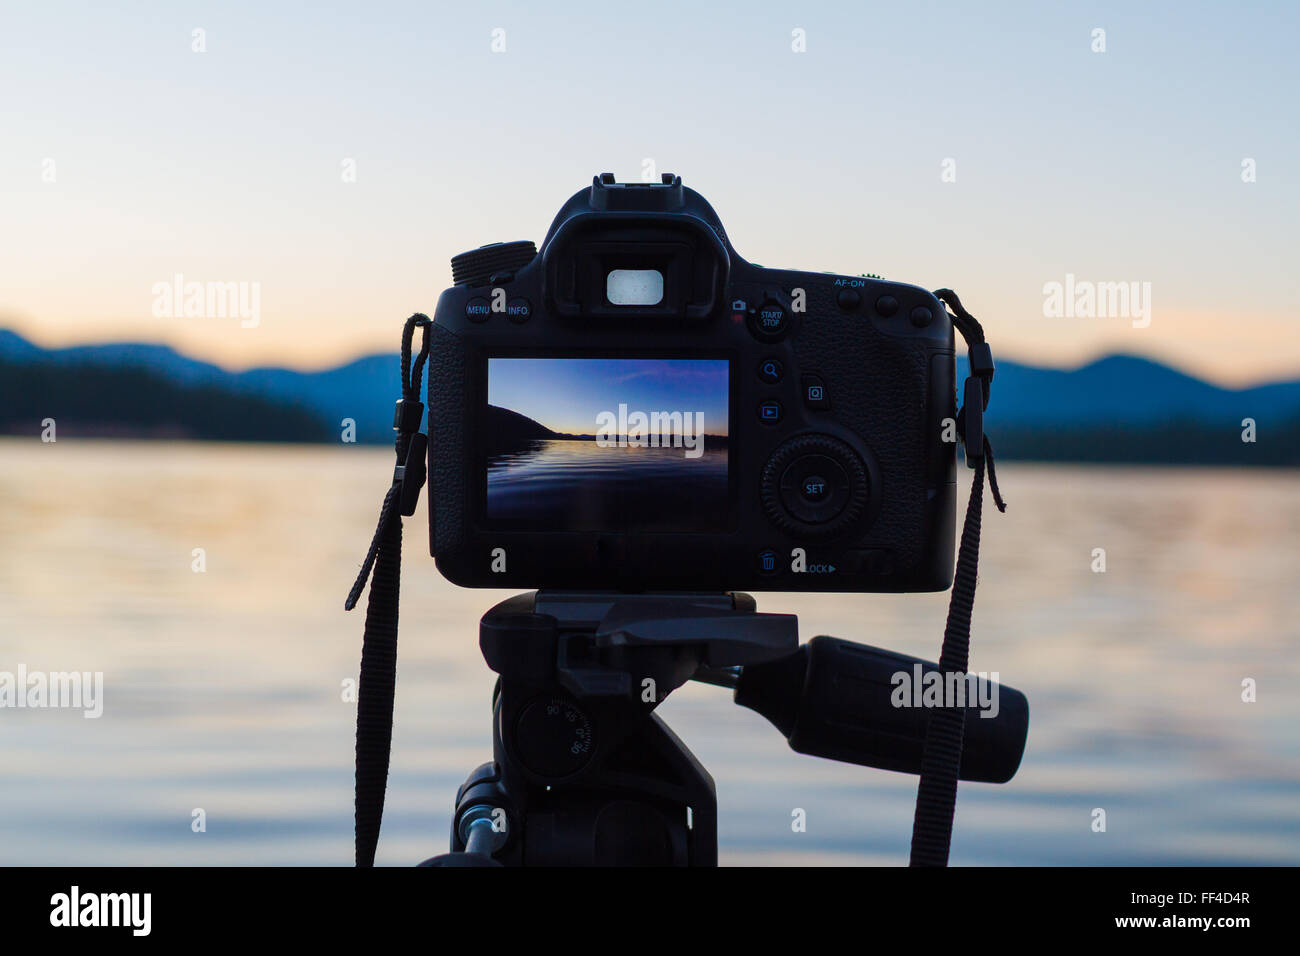 Sunset photos shot on a DSLR digital camera mounted to a tripod at a lake in Oregon. - Stock Image